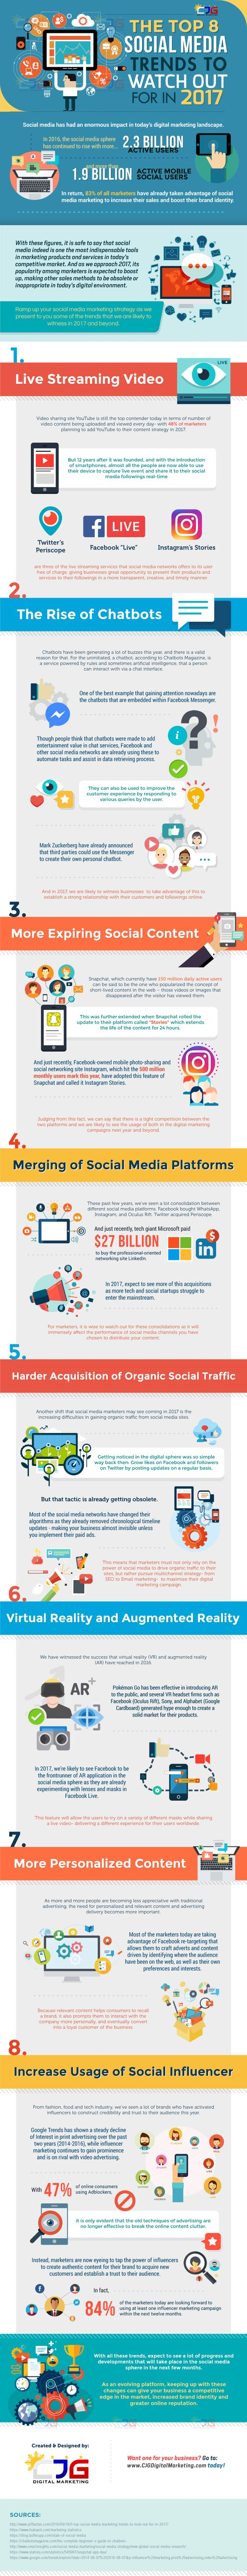 Infographic Of The Week: 8 Social Media Trends To Know For 2017